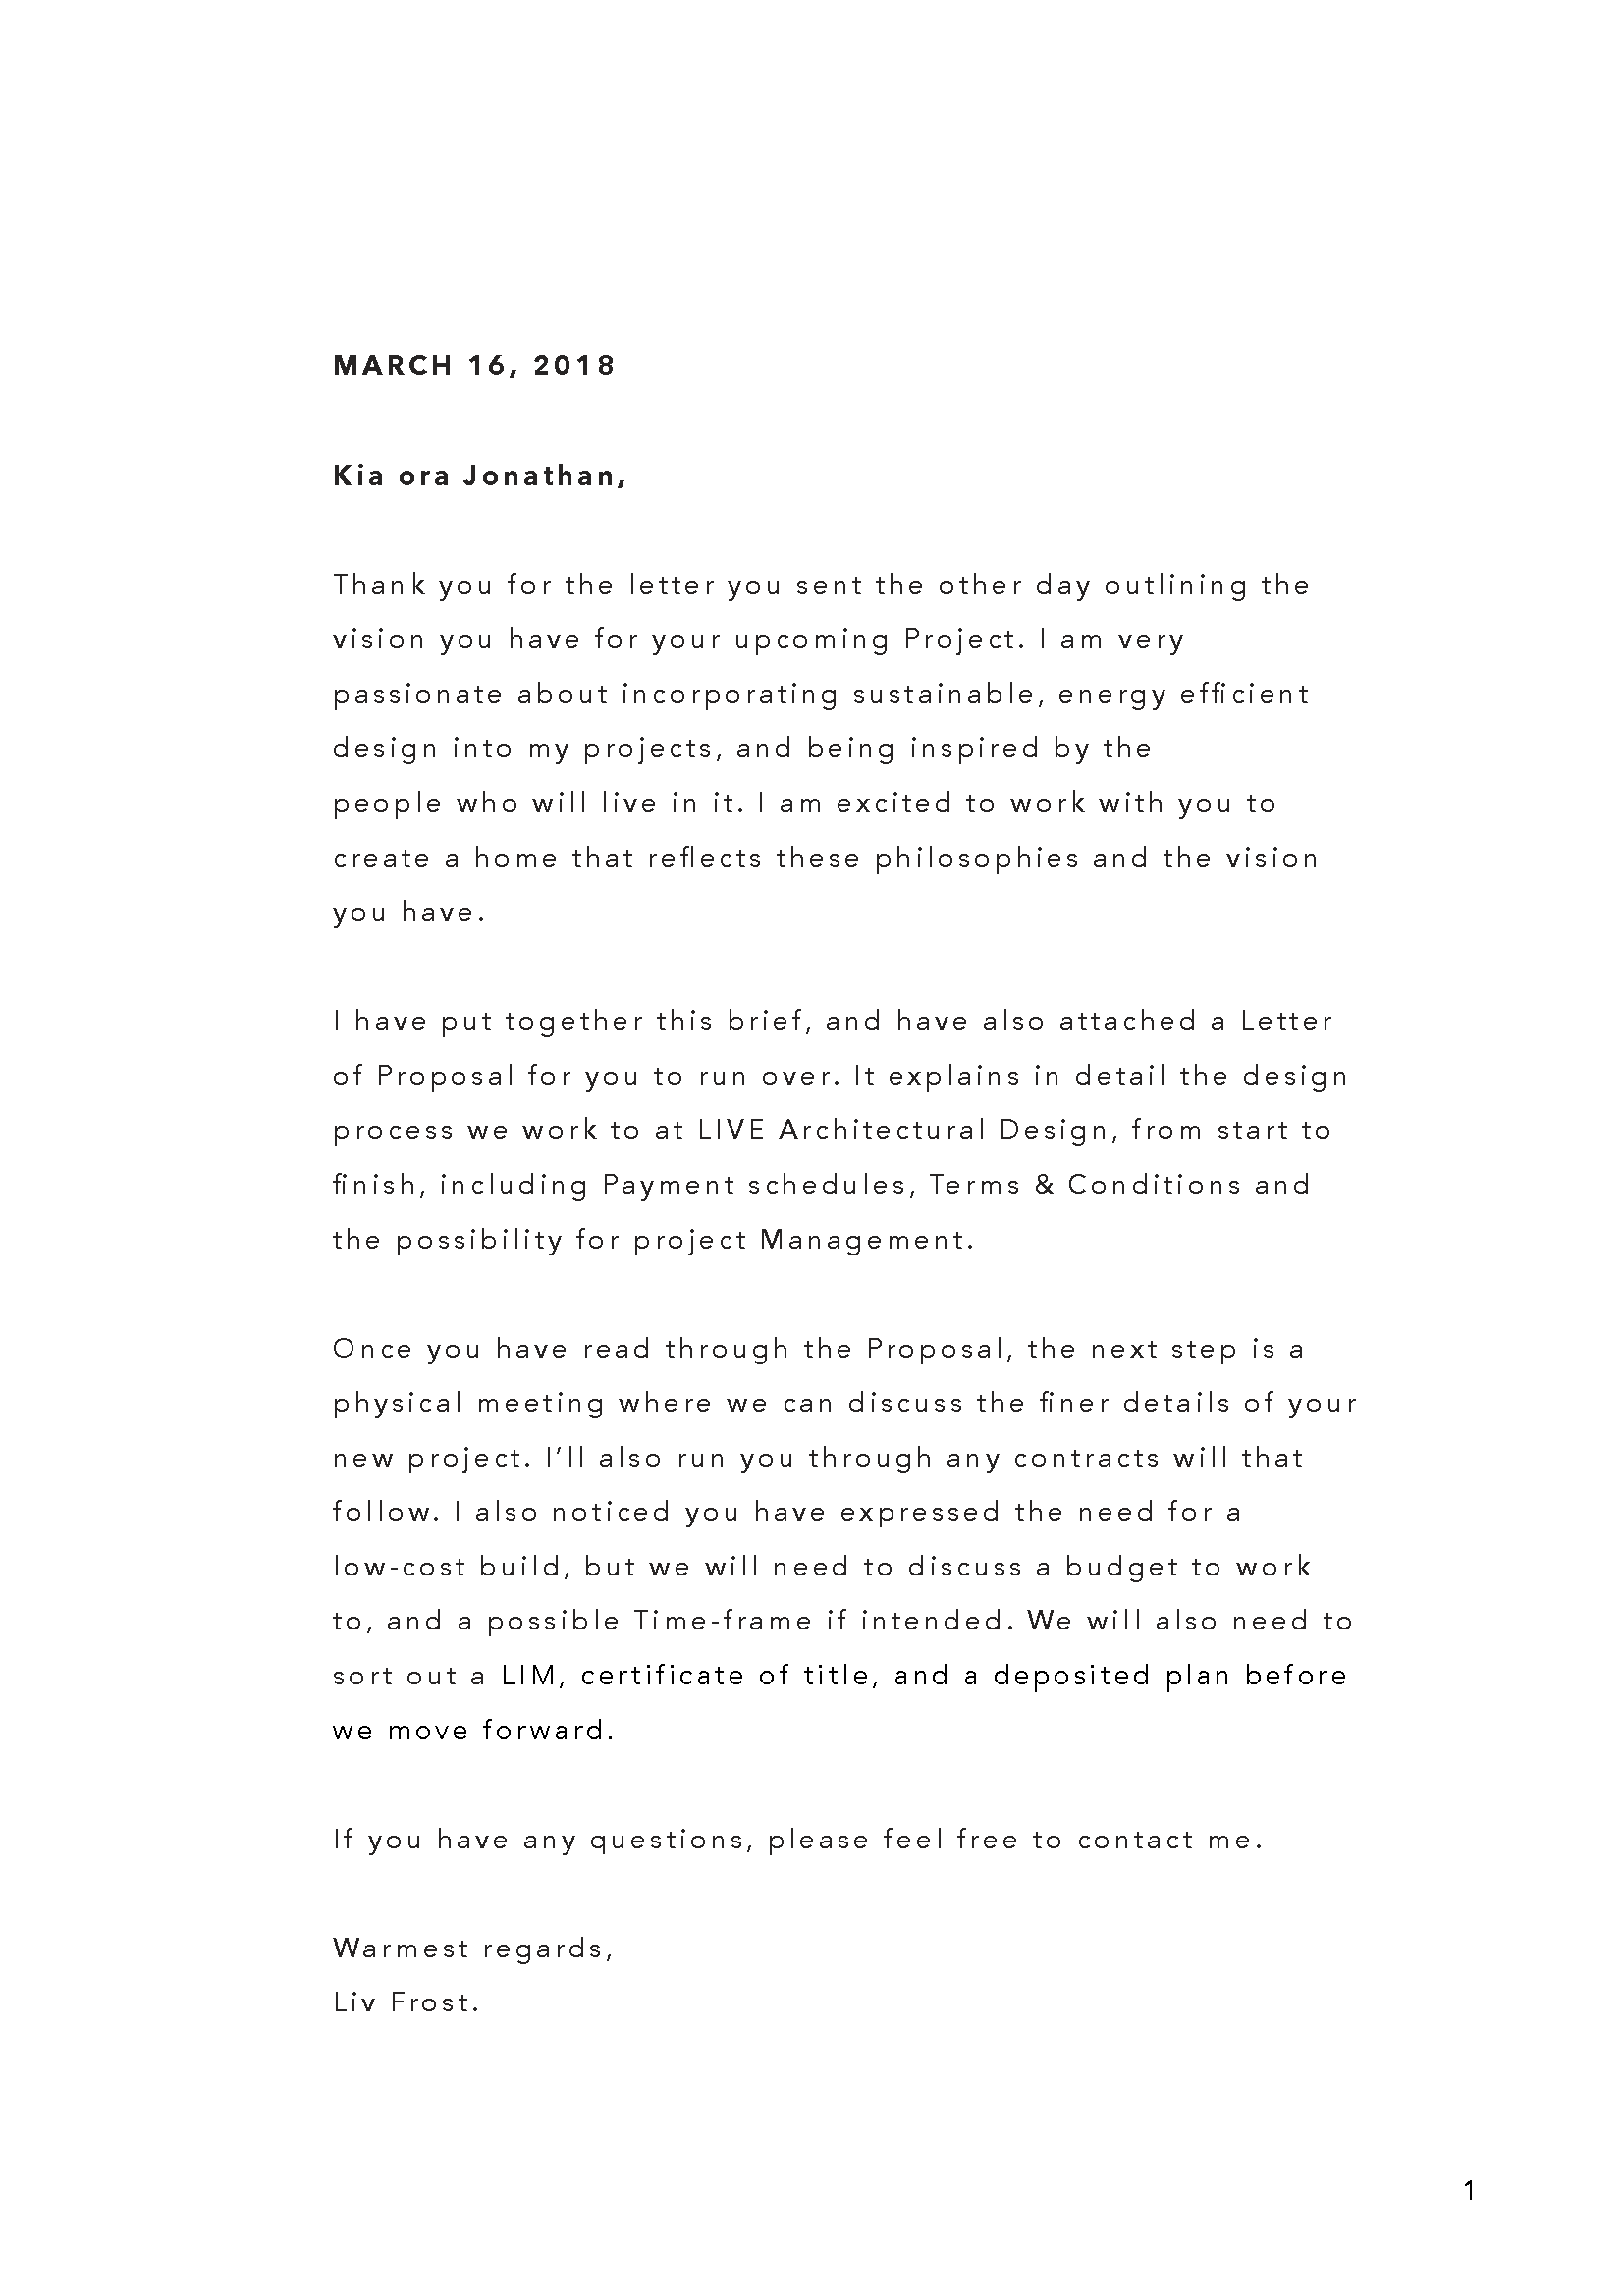 LIVE Documents_Page_11.png